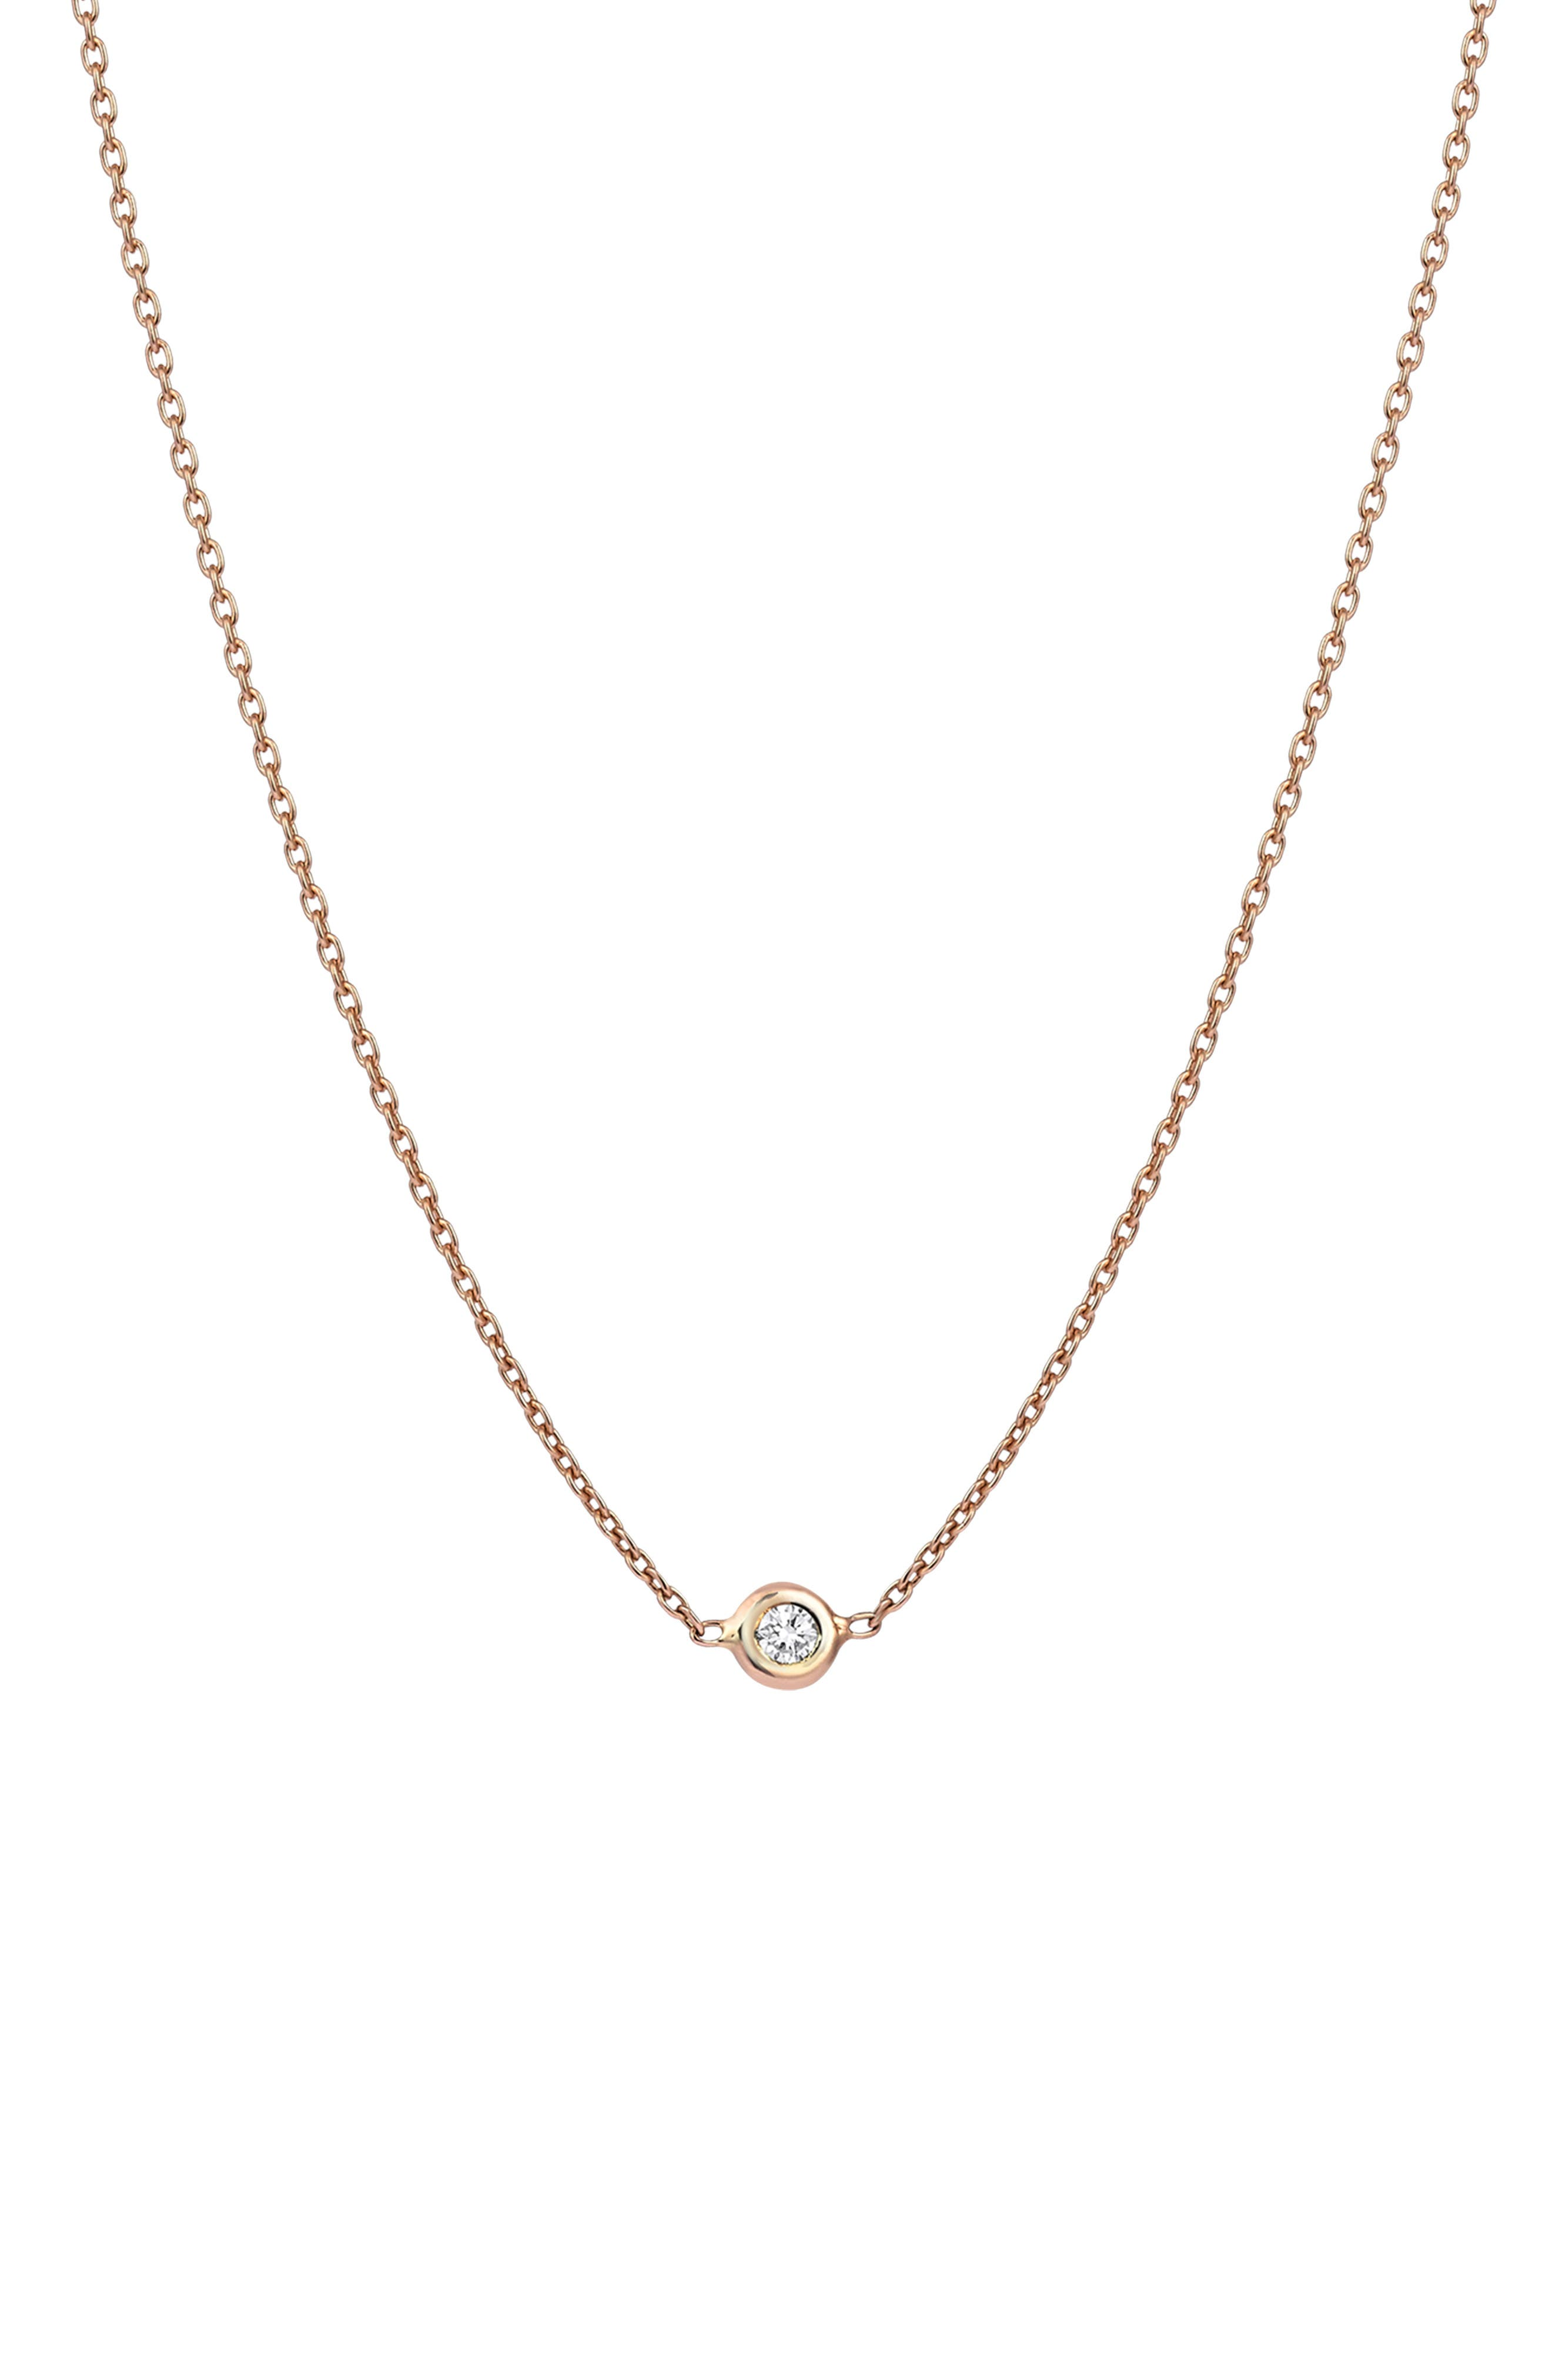 Diamond Choker Necklace,                         Main,                         color, ROSE GOLD